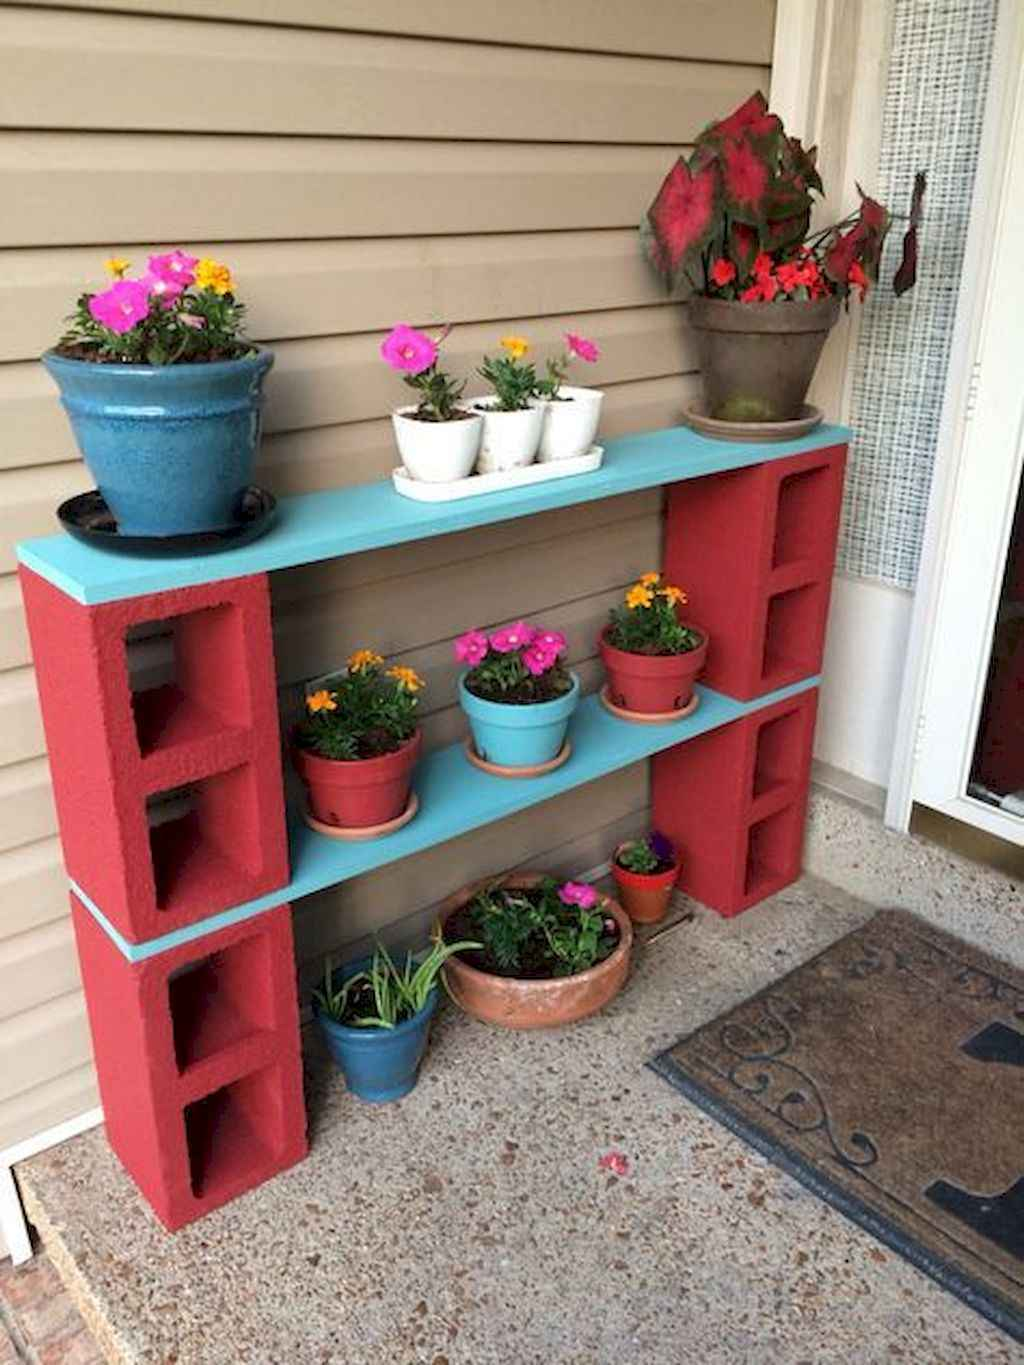 Cleverly diy porch patio decorating ideas (12)